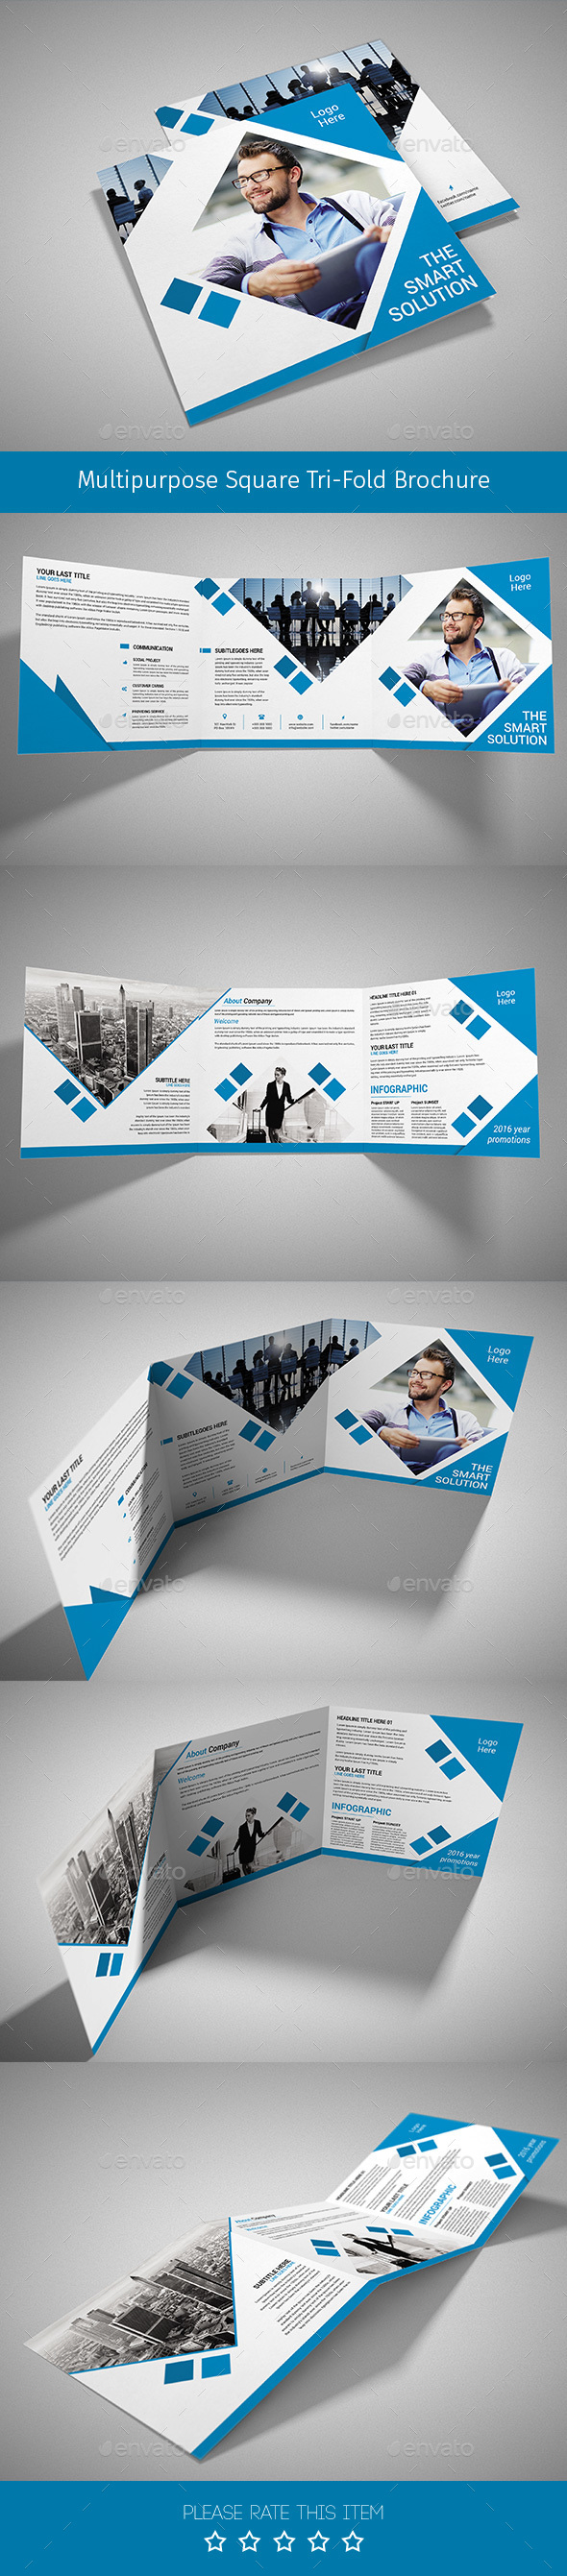 Corporate Tri-fold Square Brochure 09 - Corporate Brochures